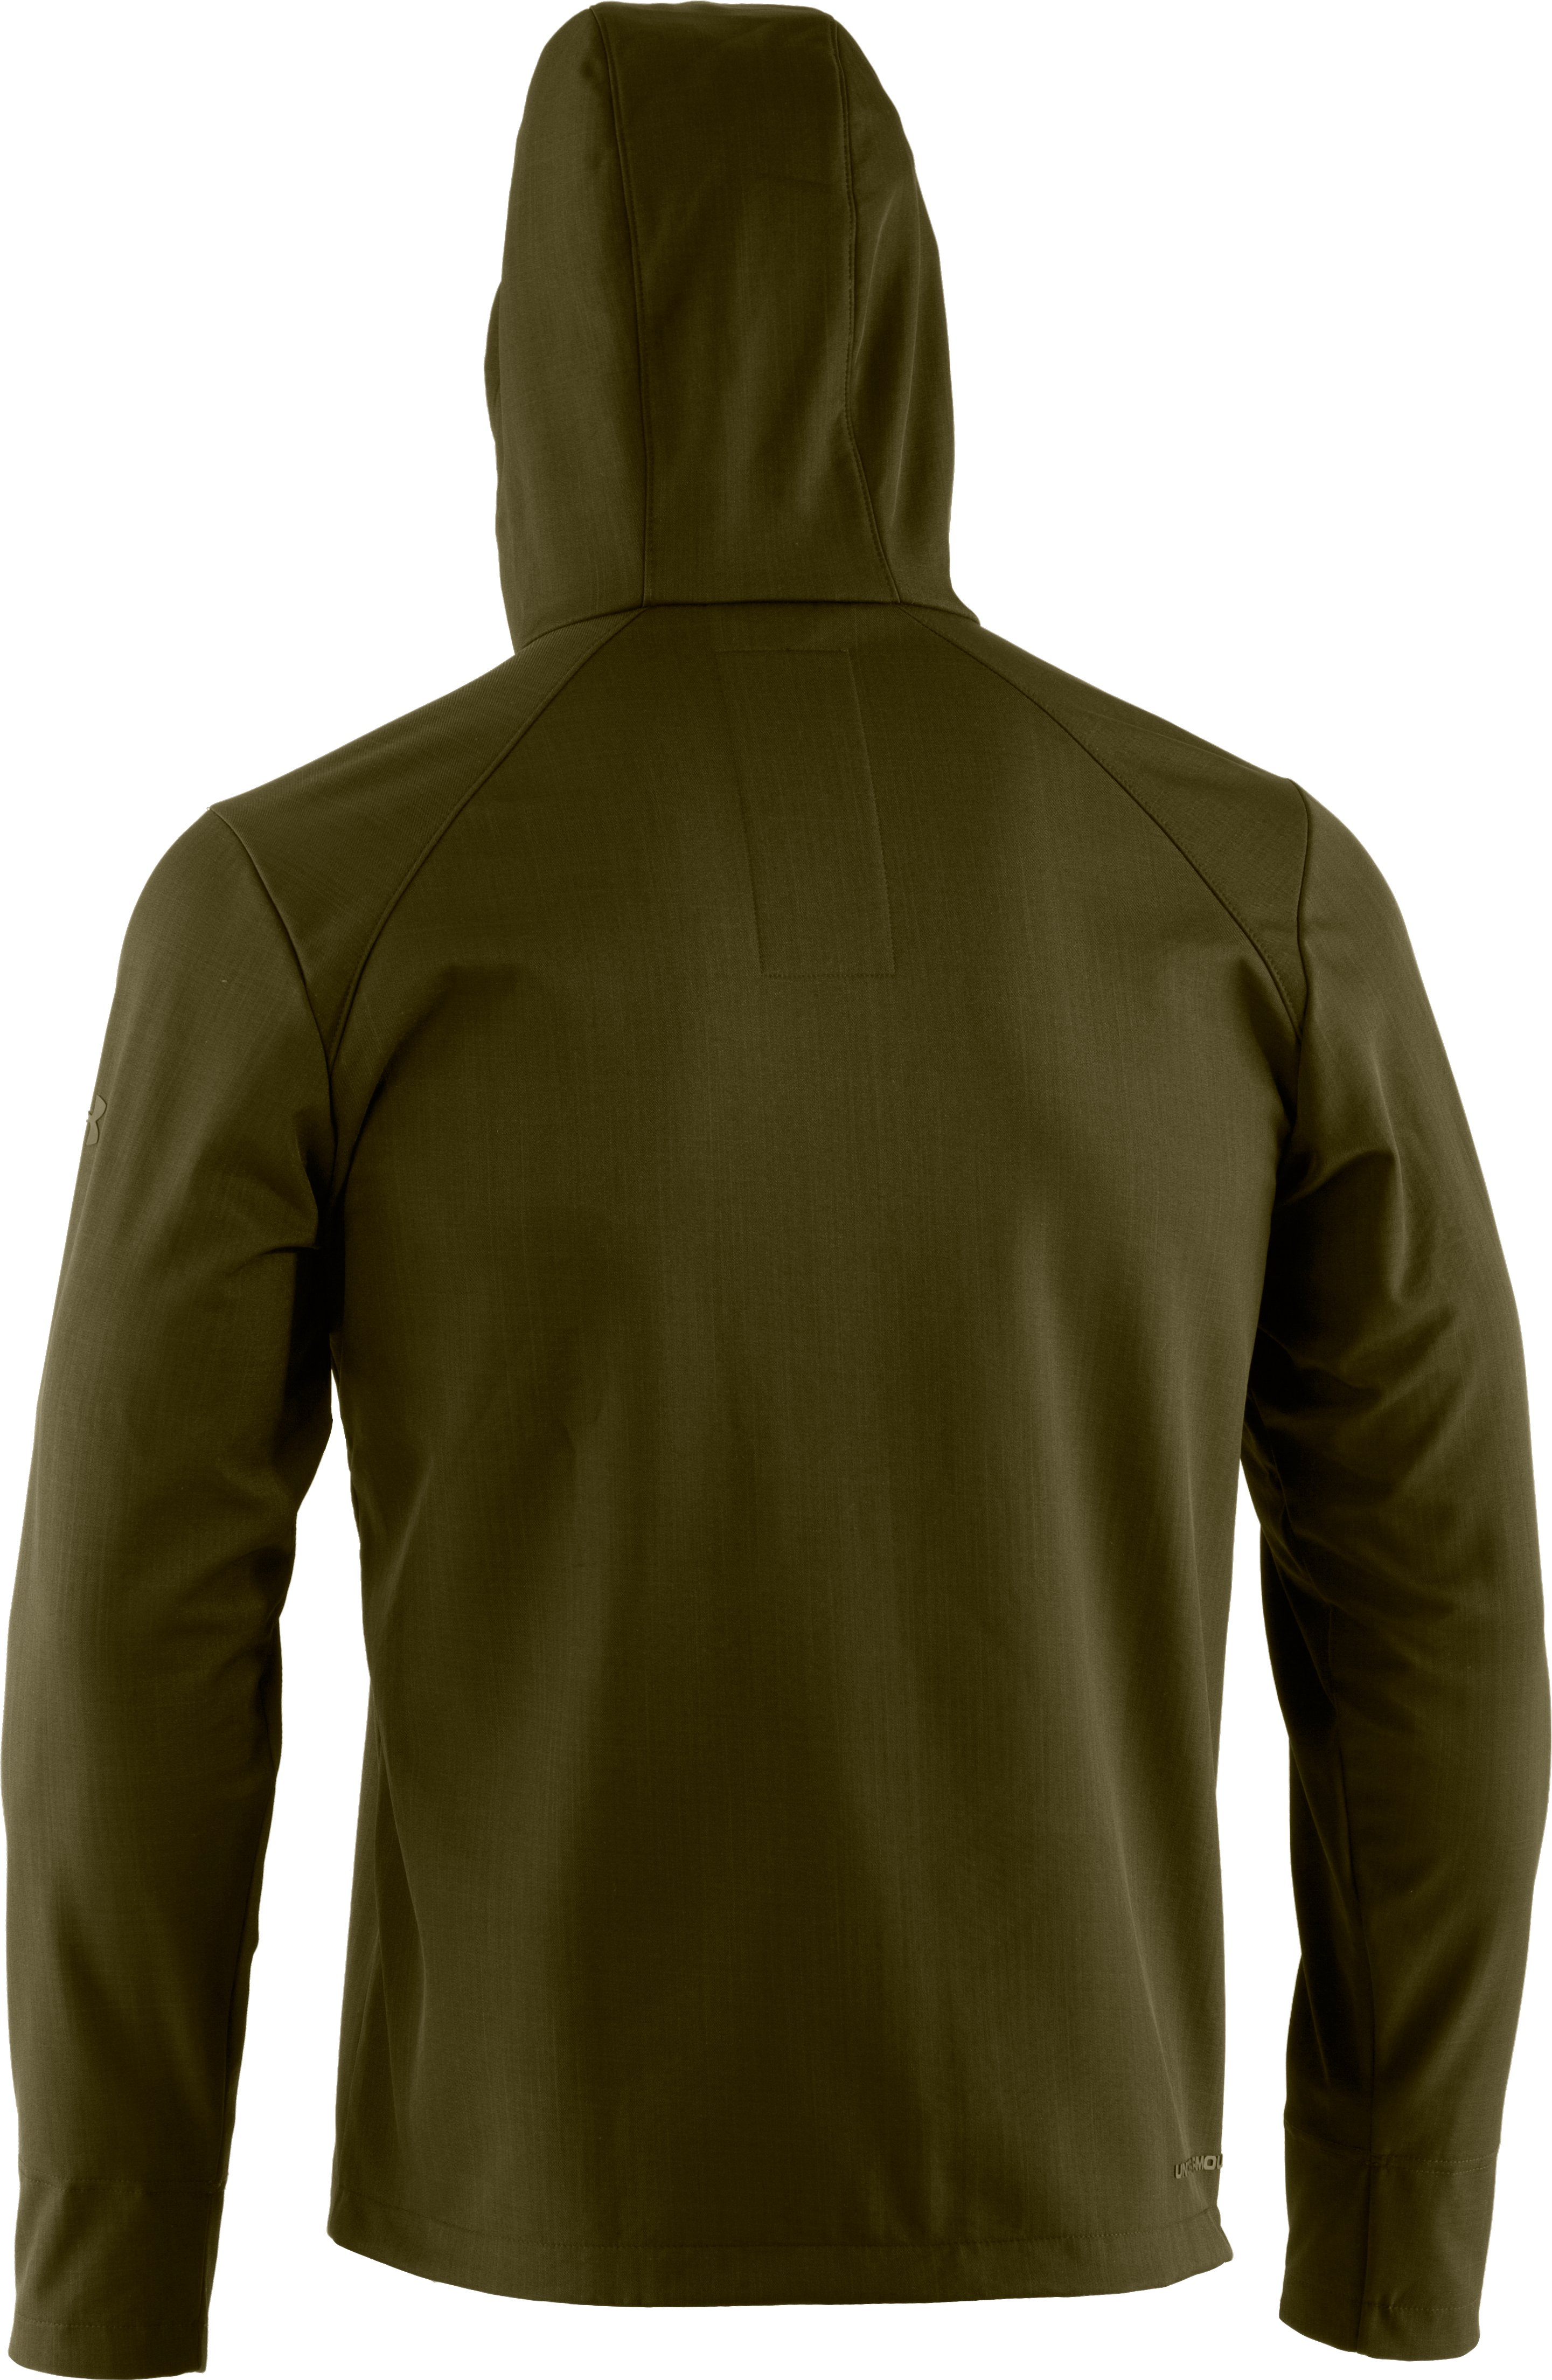 Men's ColdGear® Infrared Receptor Softshell, GREENHEAD